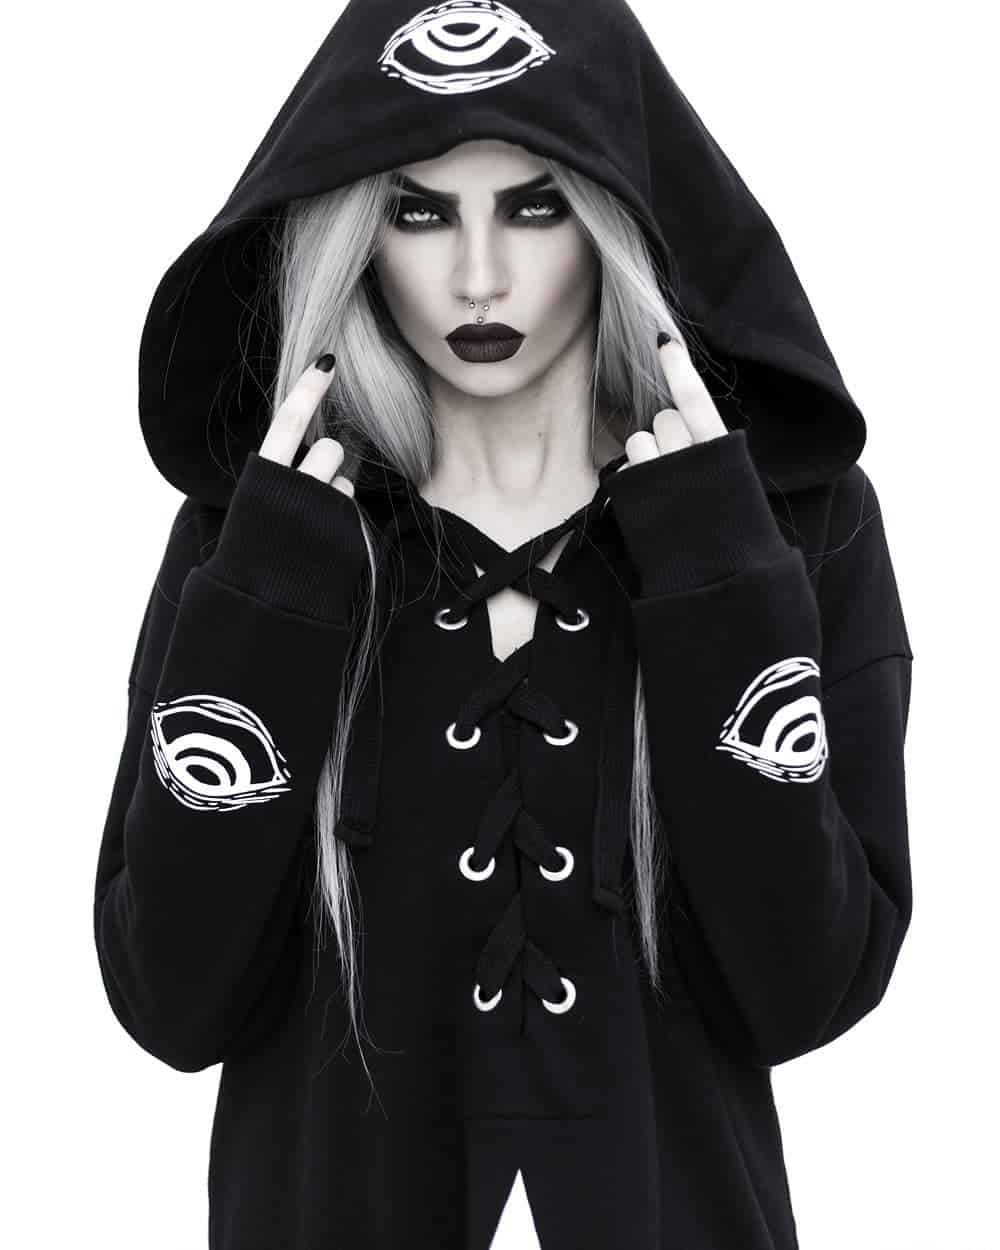 Witchy woman in black hoodie